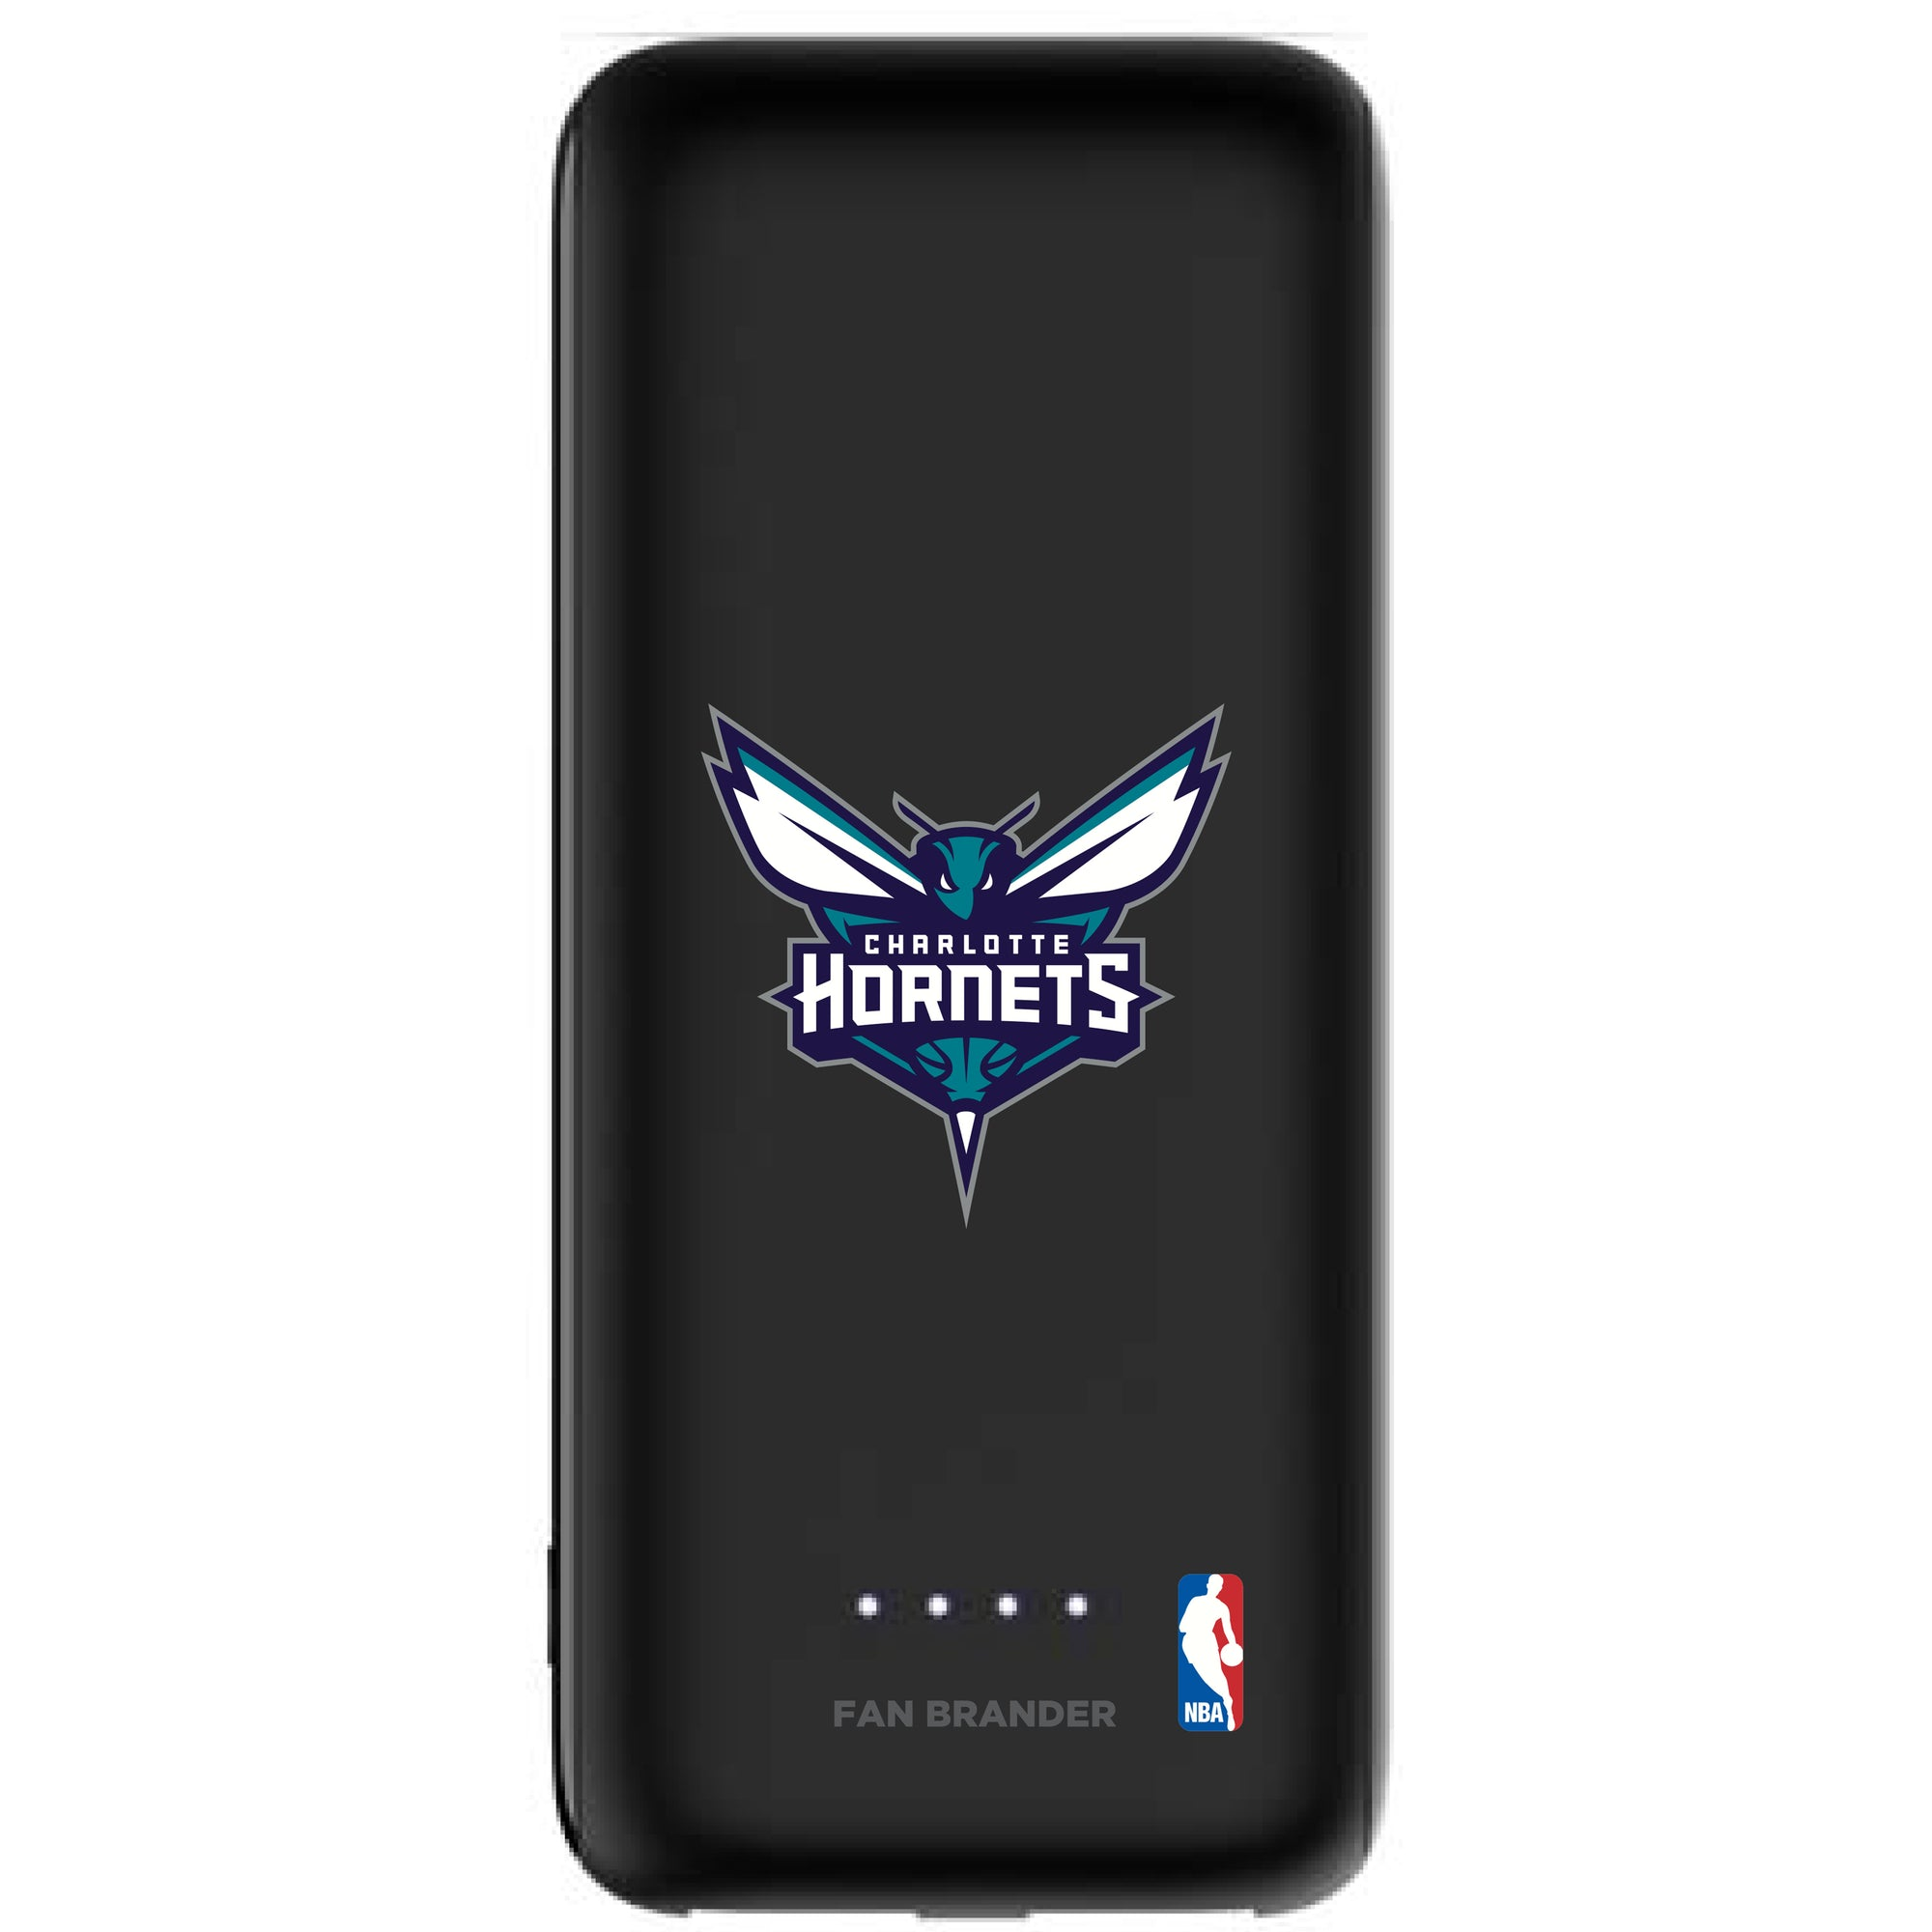 Charlotte Hornets Power Boost Mini 5,200 mAH